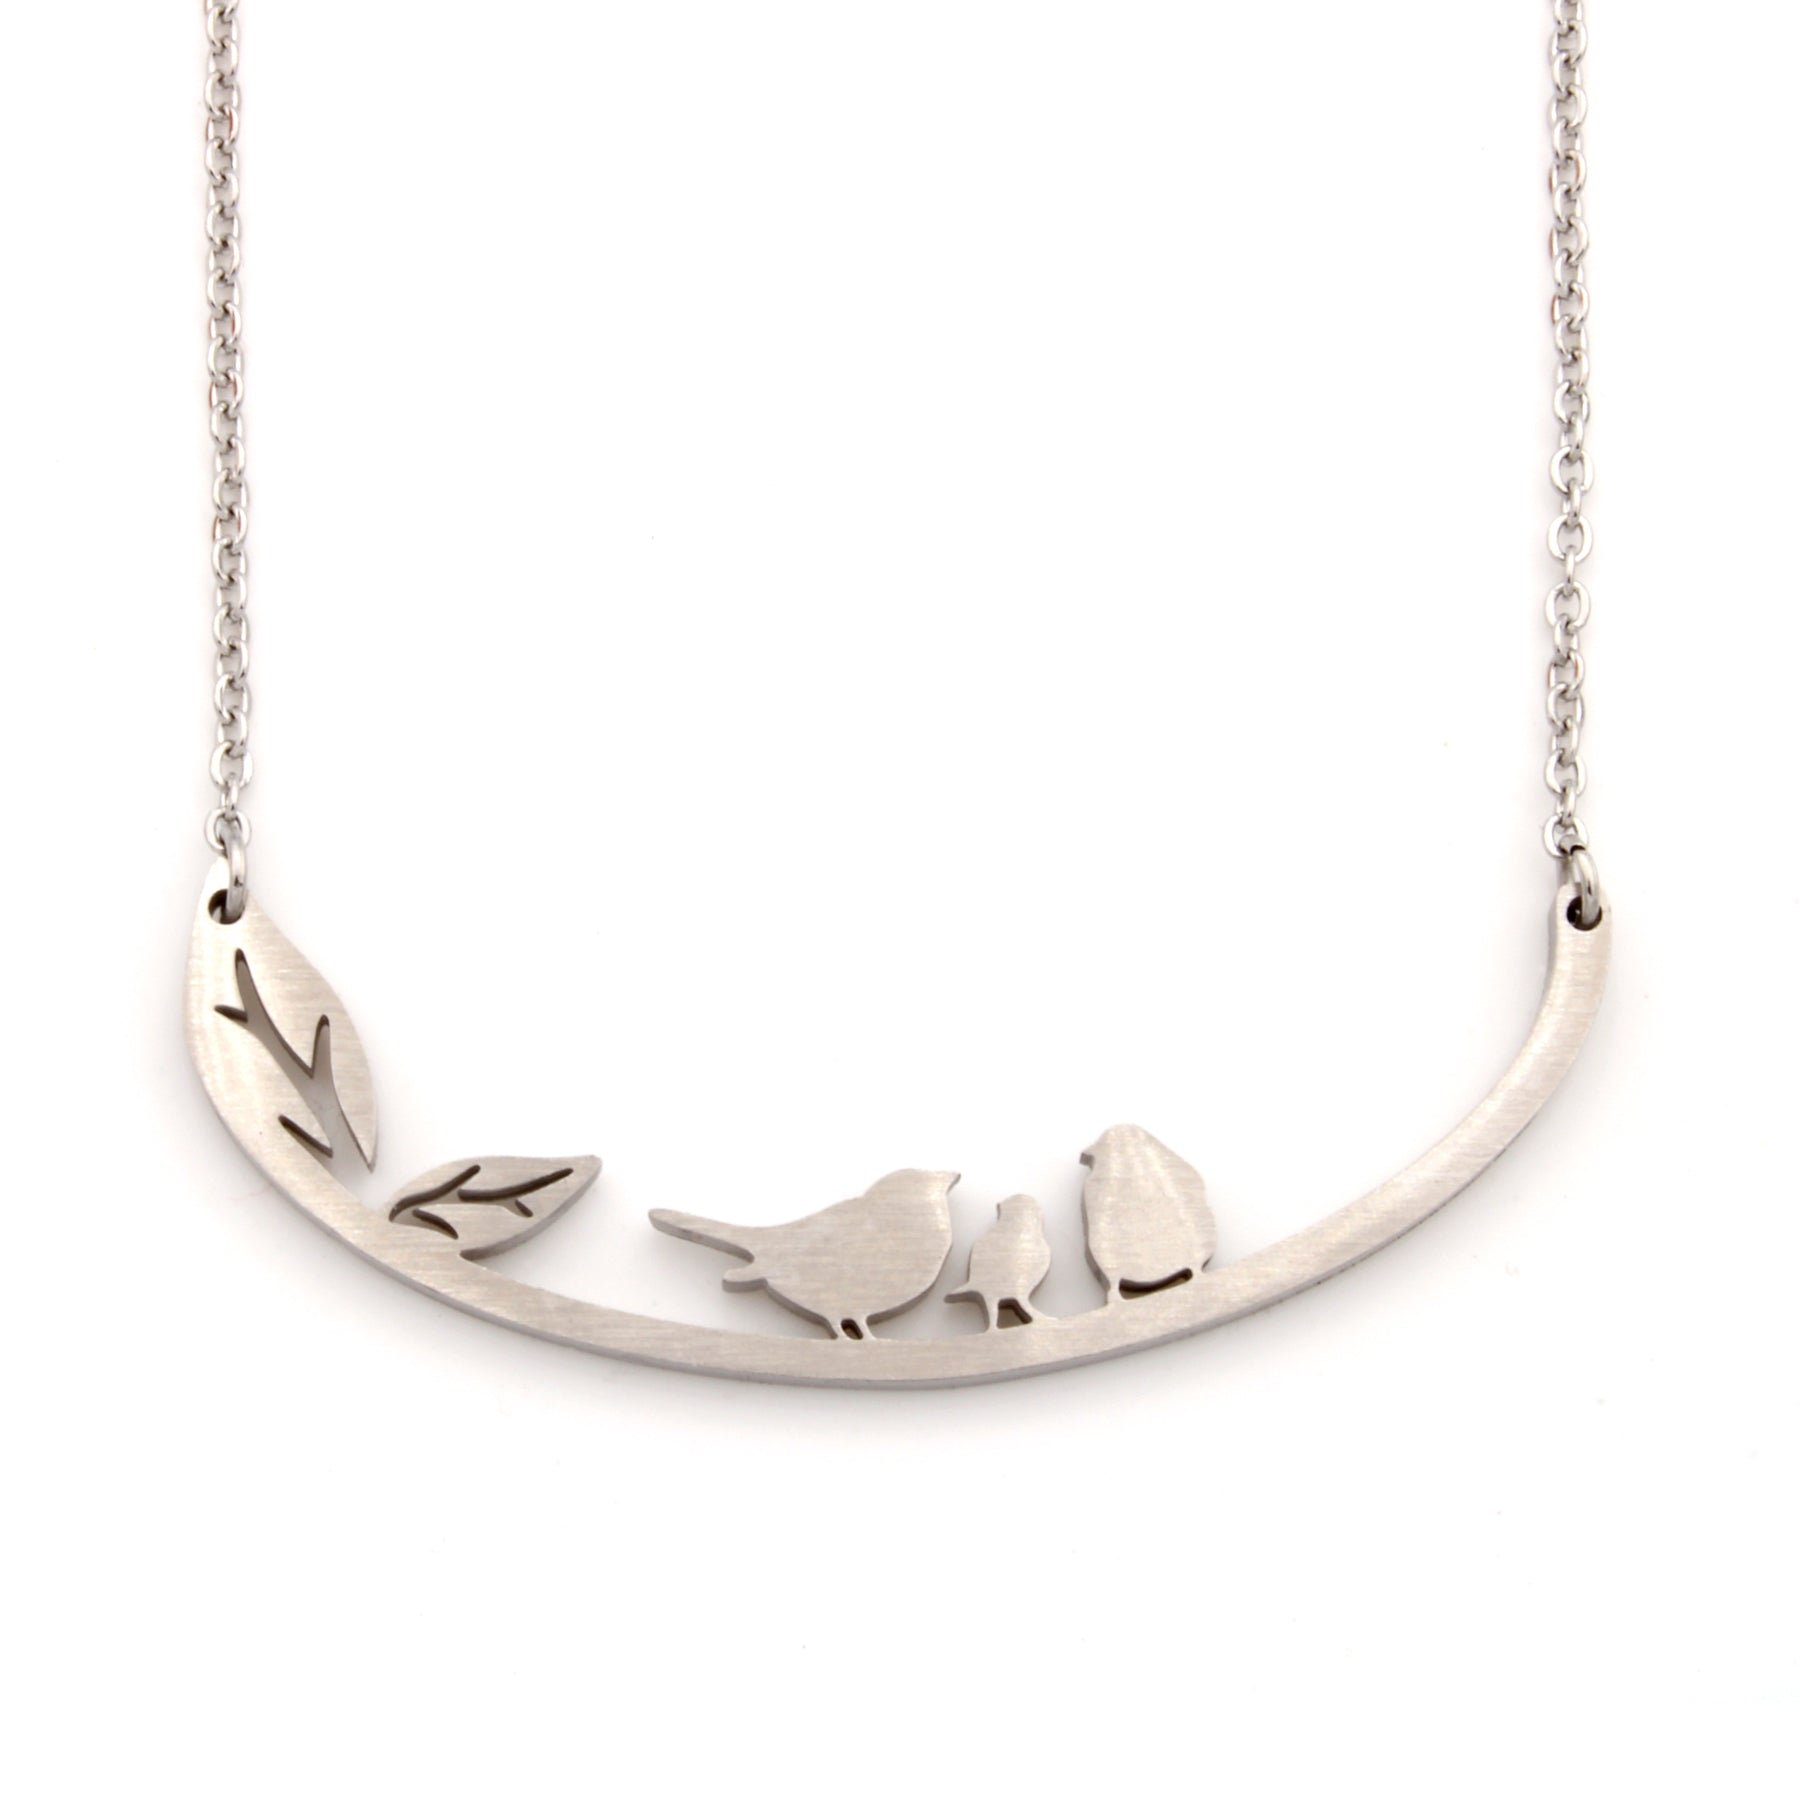 Stainless Steel Necklace - Birds